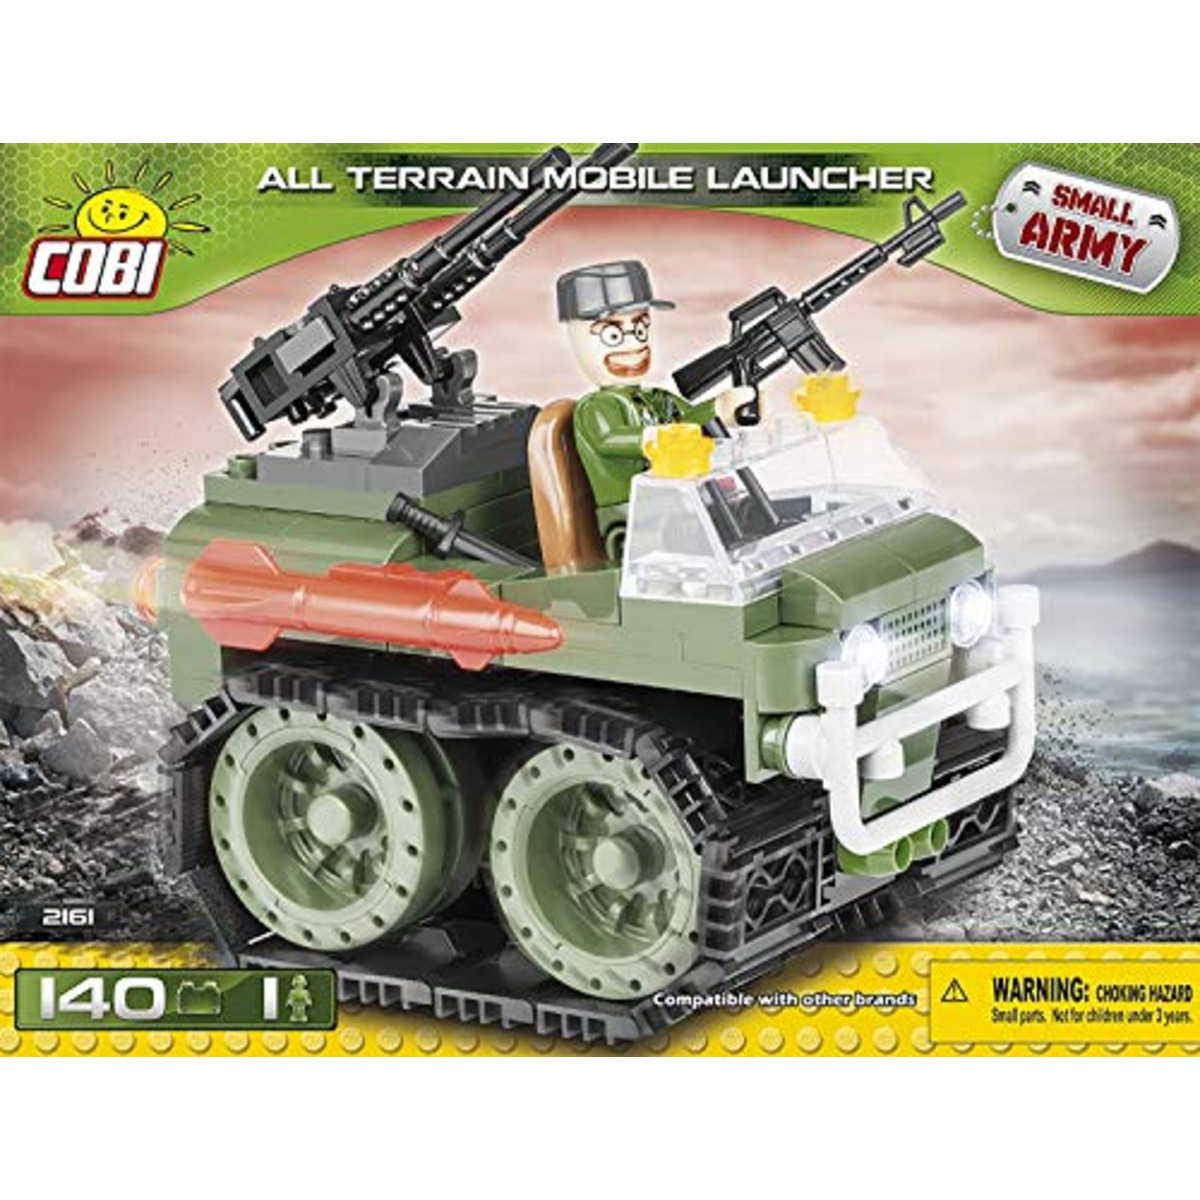 5902251021610-140-pcs-small-army-2161-all-terrain-mobile-launcher